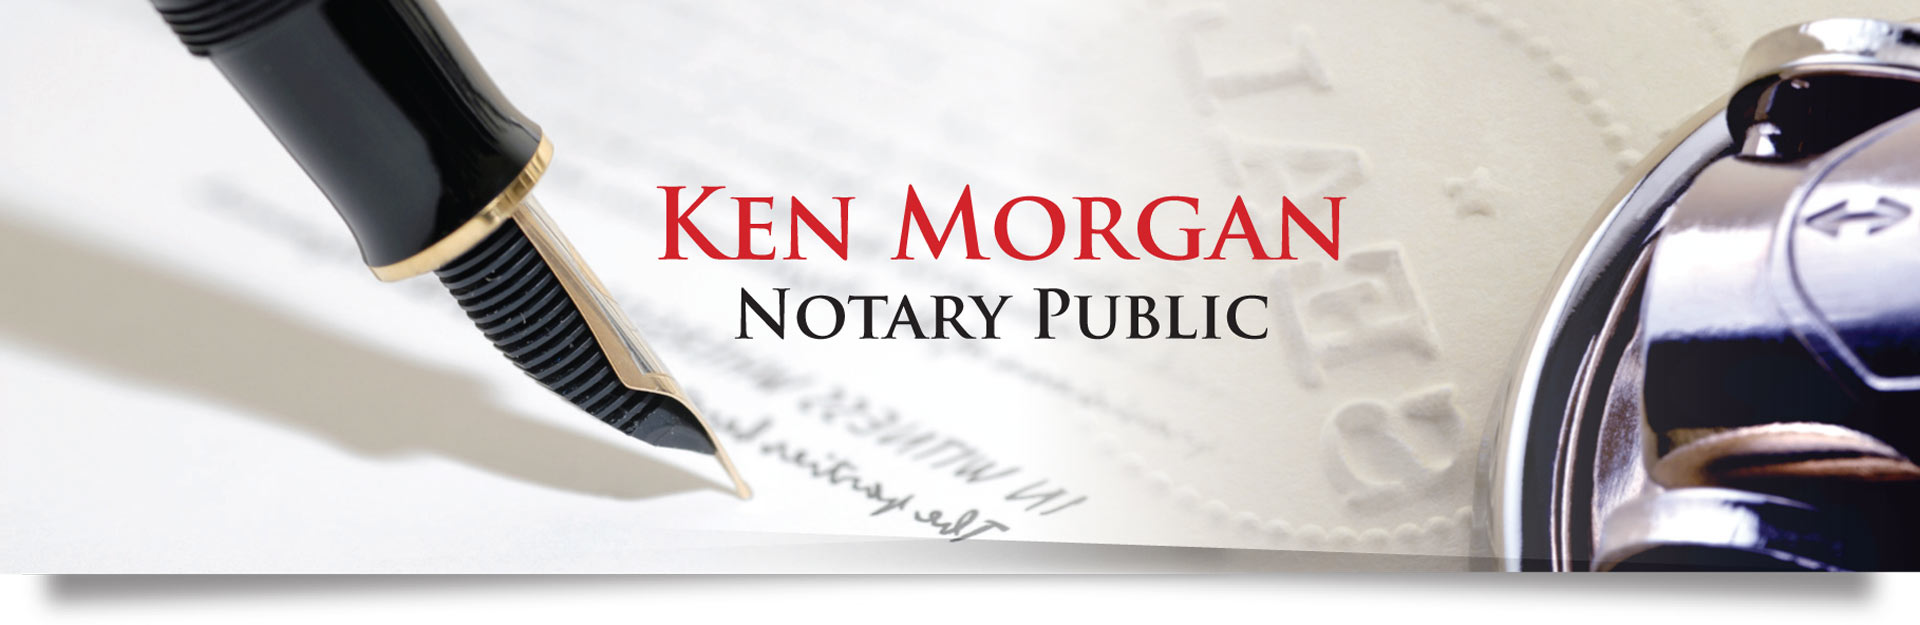 Notary Public Swansea contact us  Notary Wales